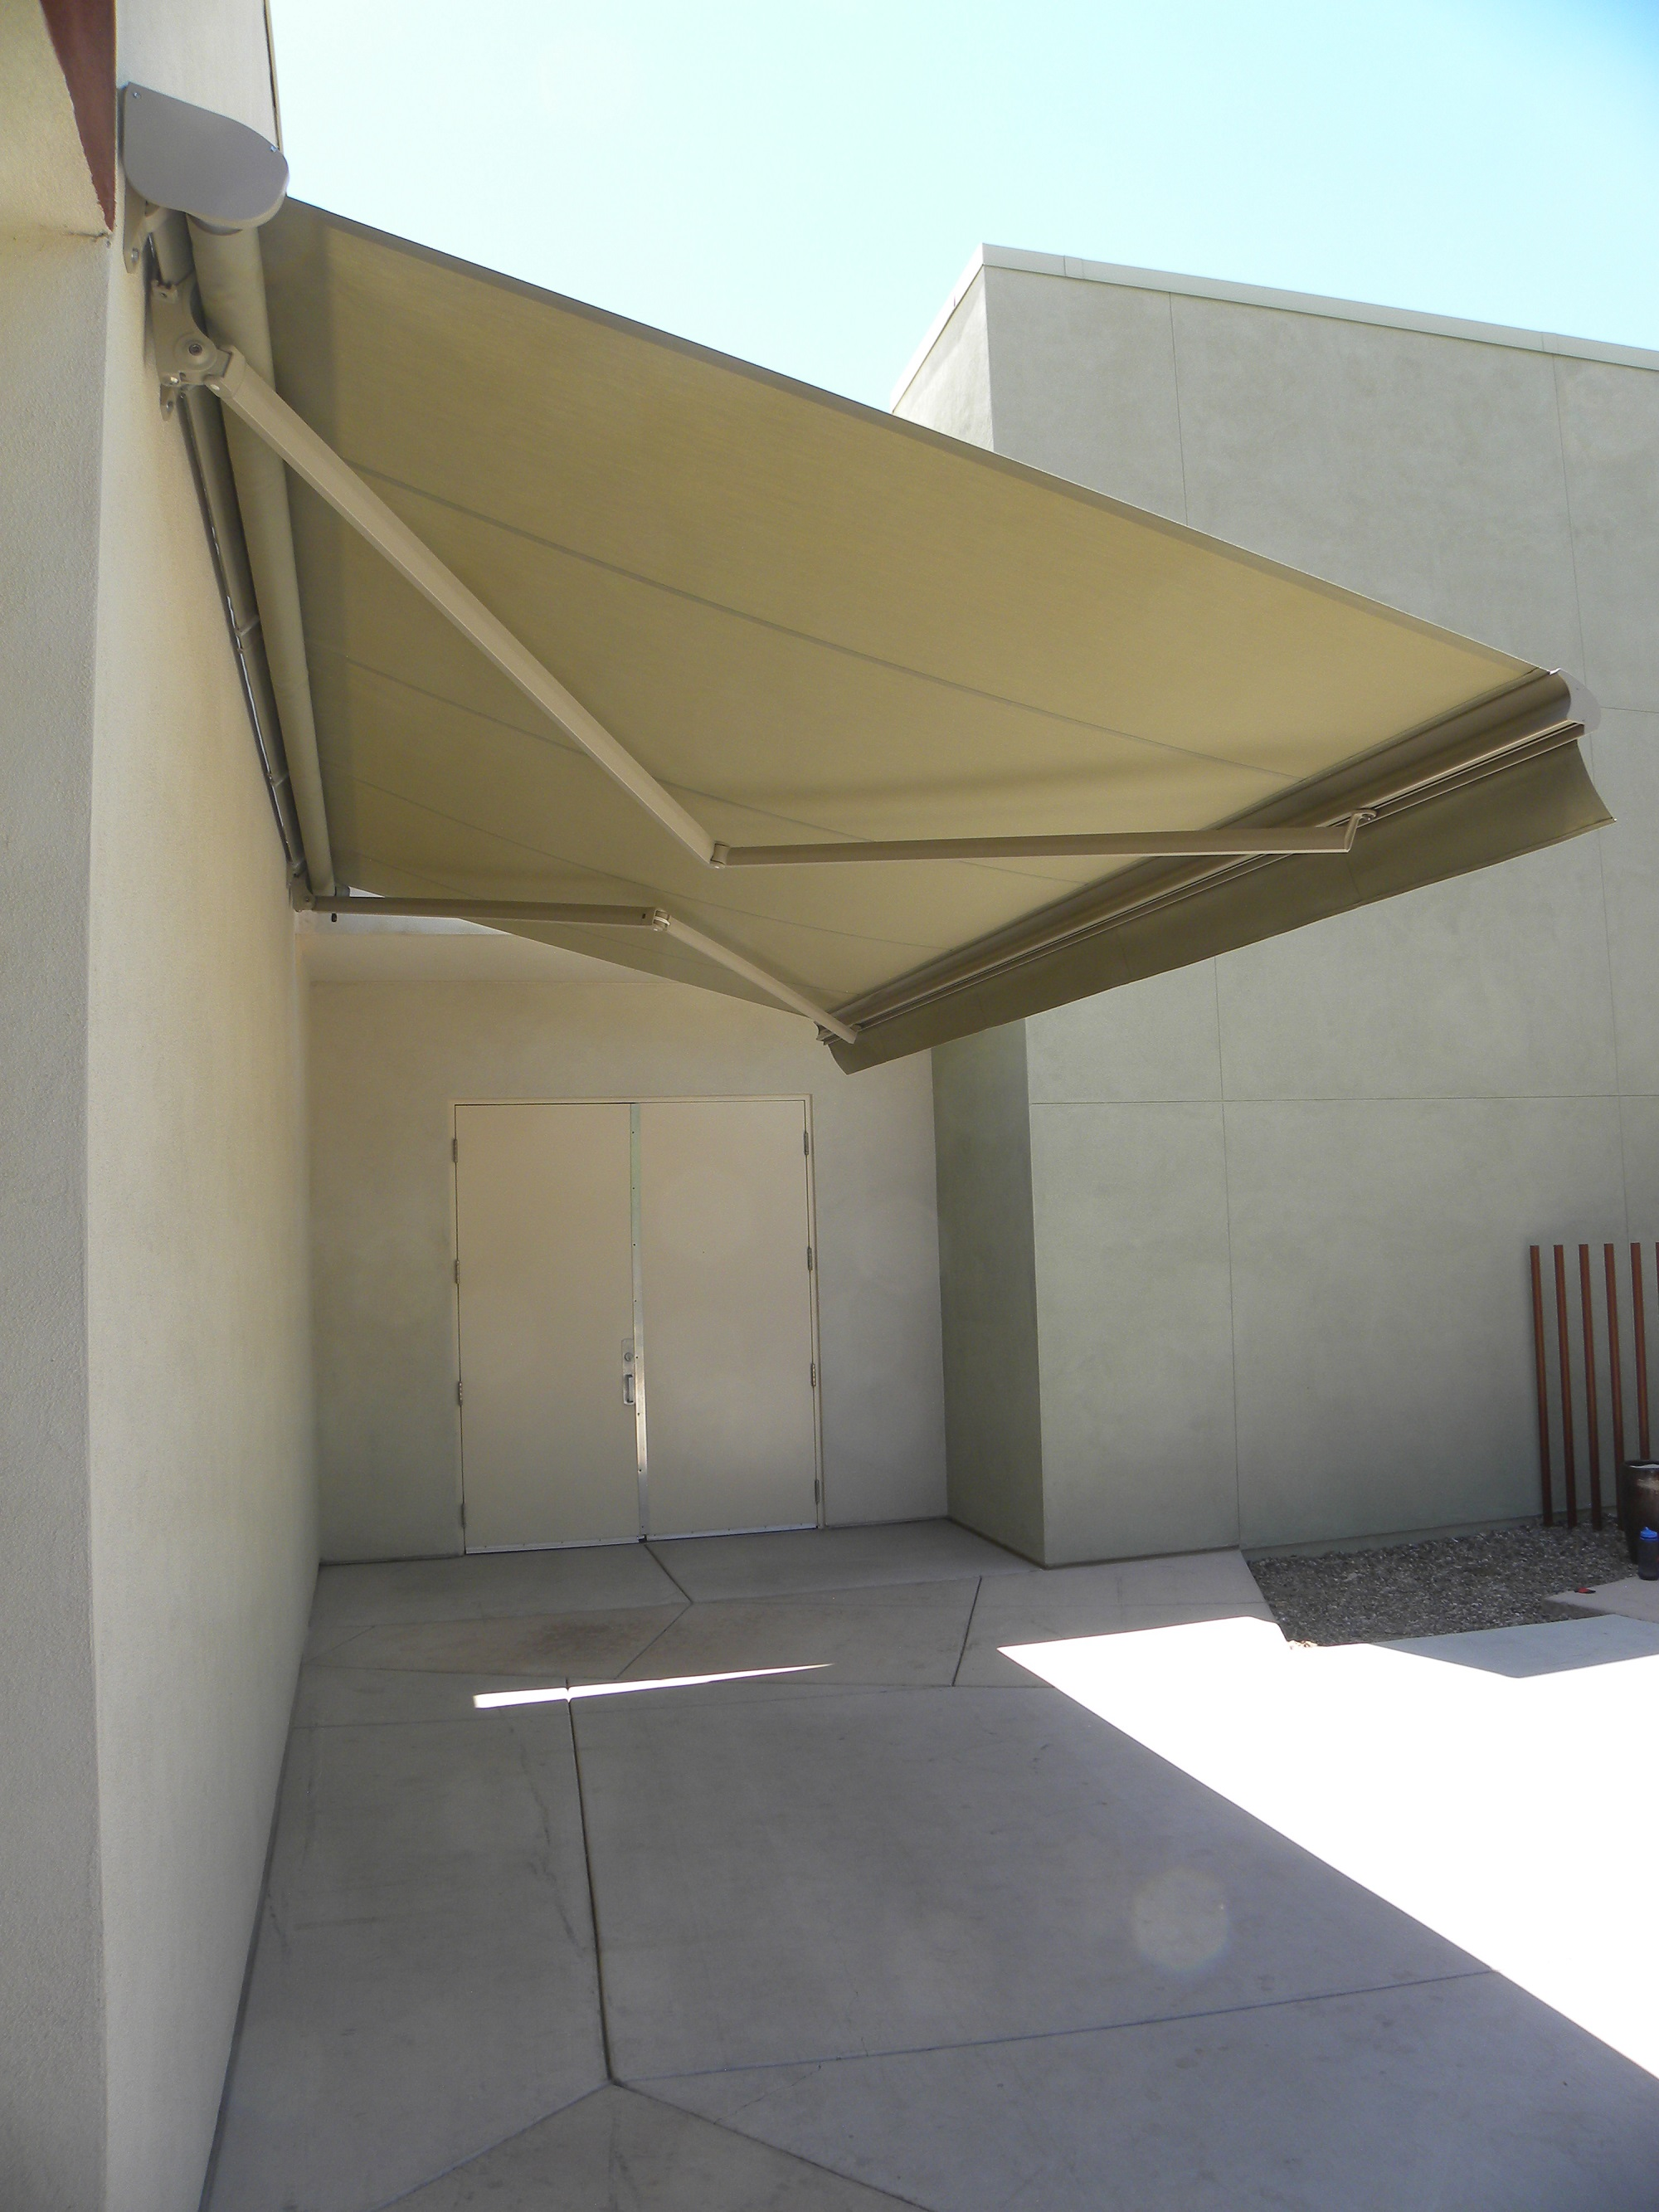 shade fabric outdoor commercial pin repair artwork homeimprovement business canopy vinylcurtains logo restaurant losangeles patiocover awnings canvas beautiful dining sunshade home awning sunbrella interiordesign